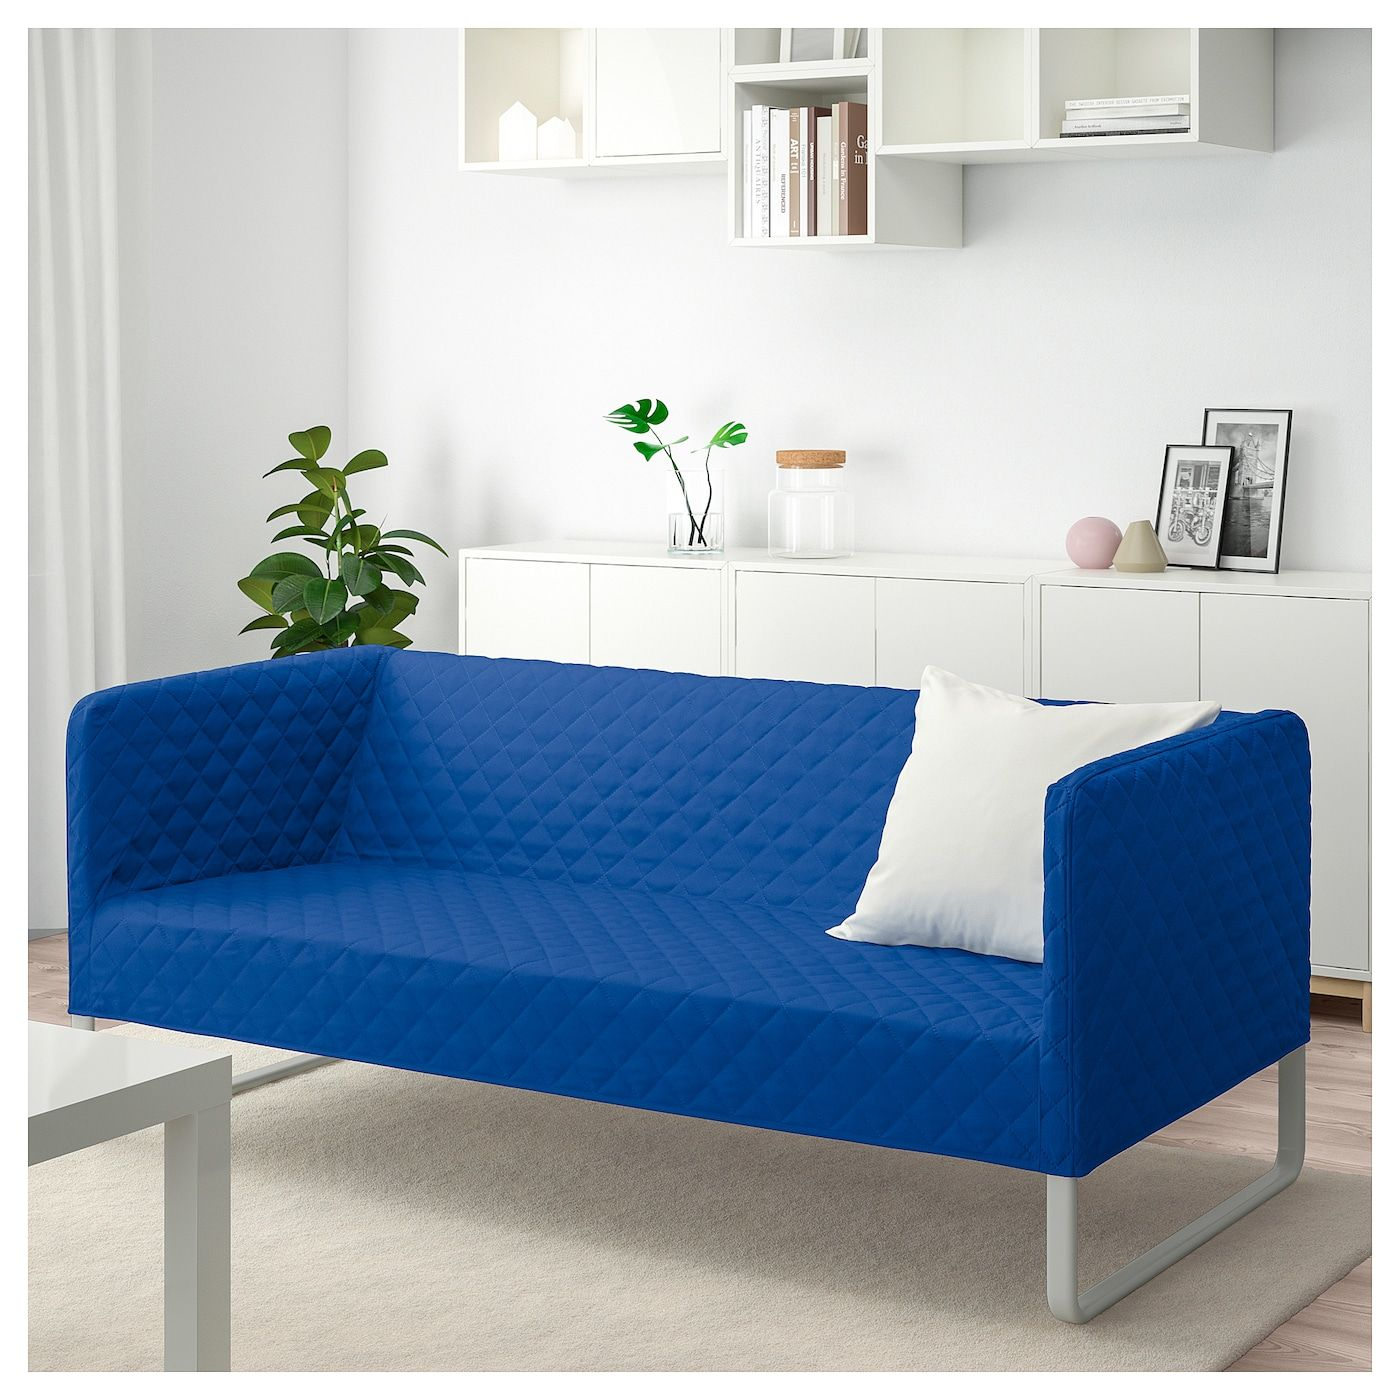 Ikea Farlov Sofa And Loveseat Looks Incredible Very Large Scale Especially For Ikea And Super Deep Seat Living Room Sofa Deep Seating Living Room Furniture